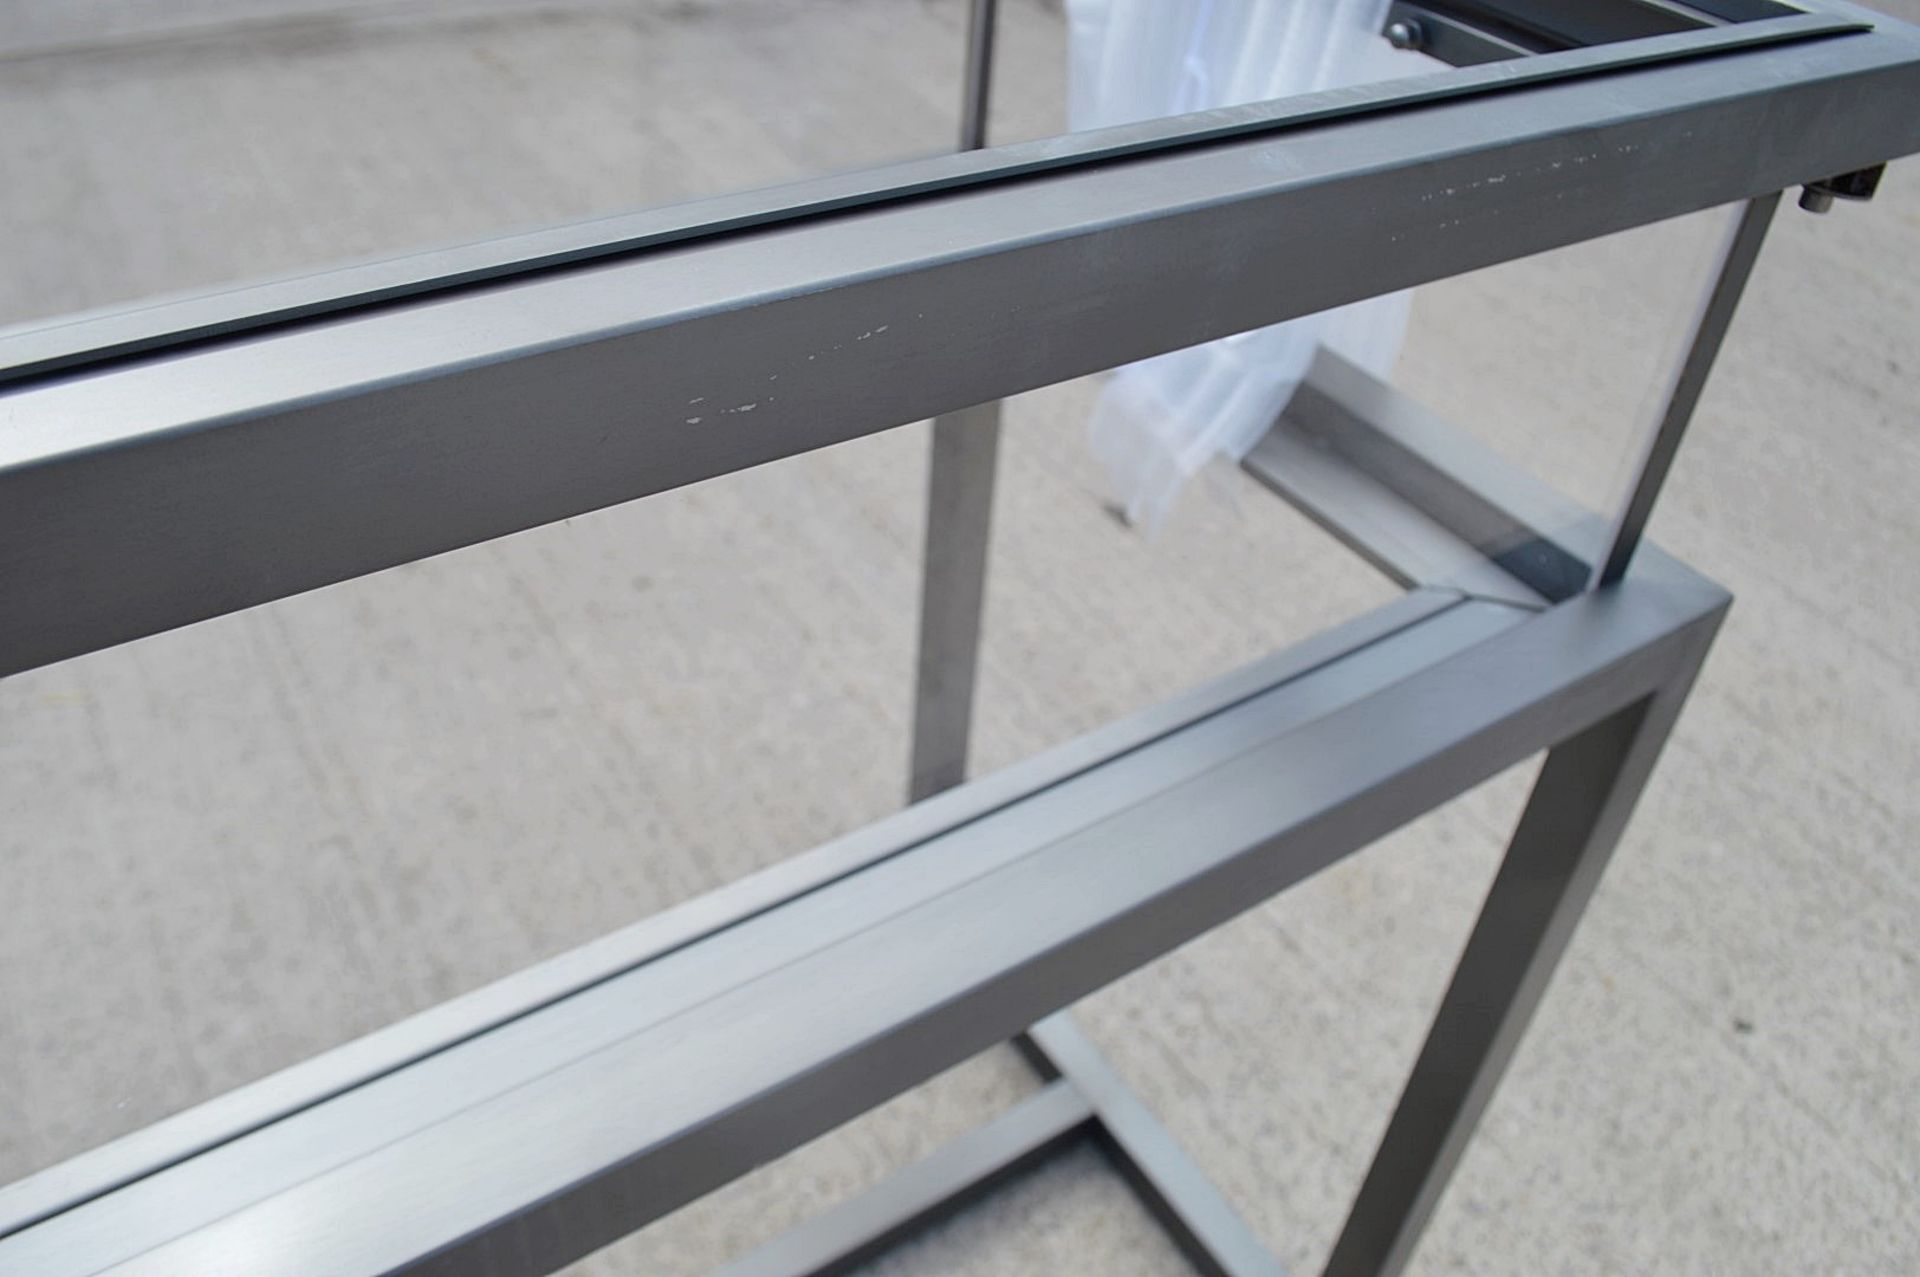 1 x EICHHOLTZ Luxury Console Table Harvey With A Sliding Glass Top And Steel Frame - RRP £3,839 - Image 13 of 16